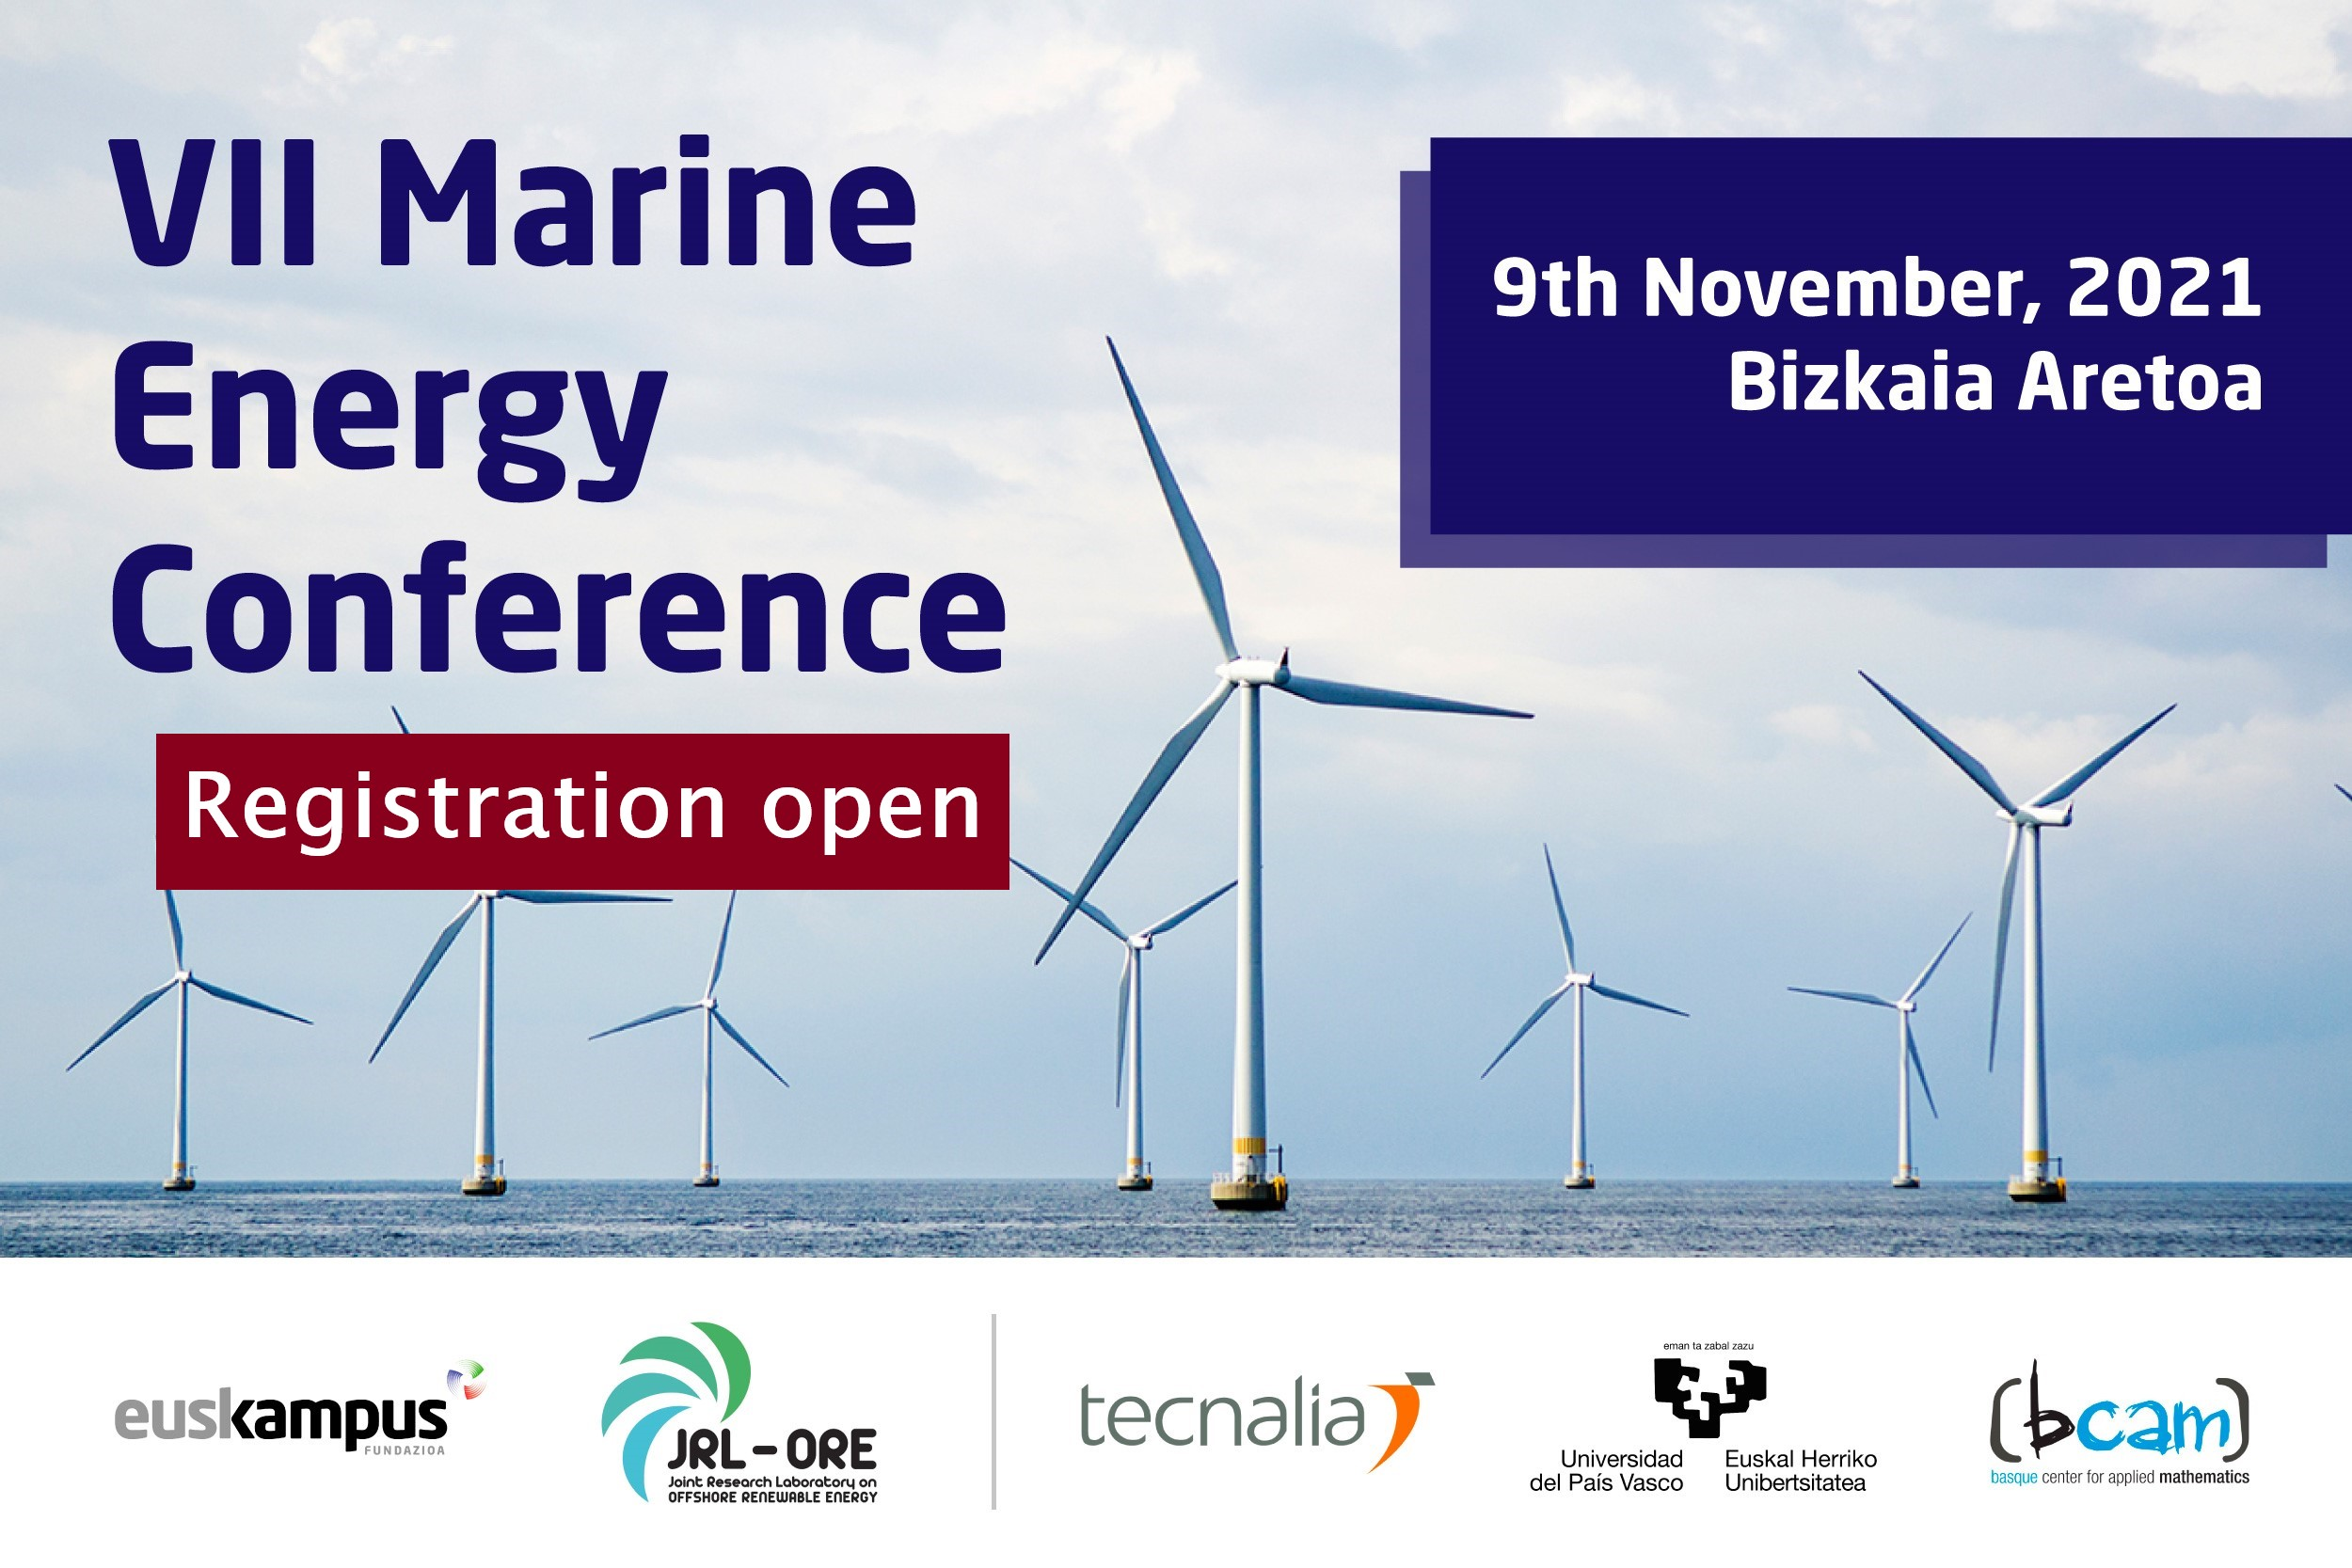 Registration for the VII Marine Energy Conference now open